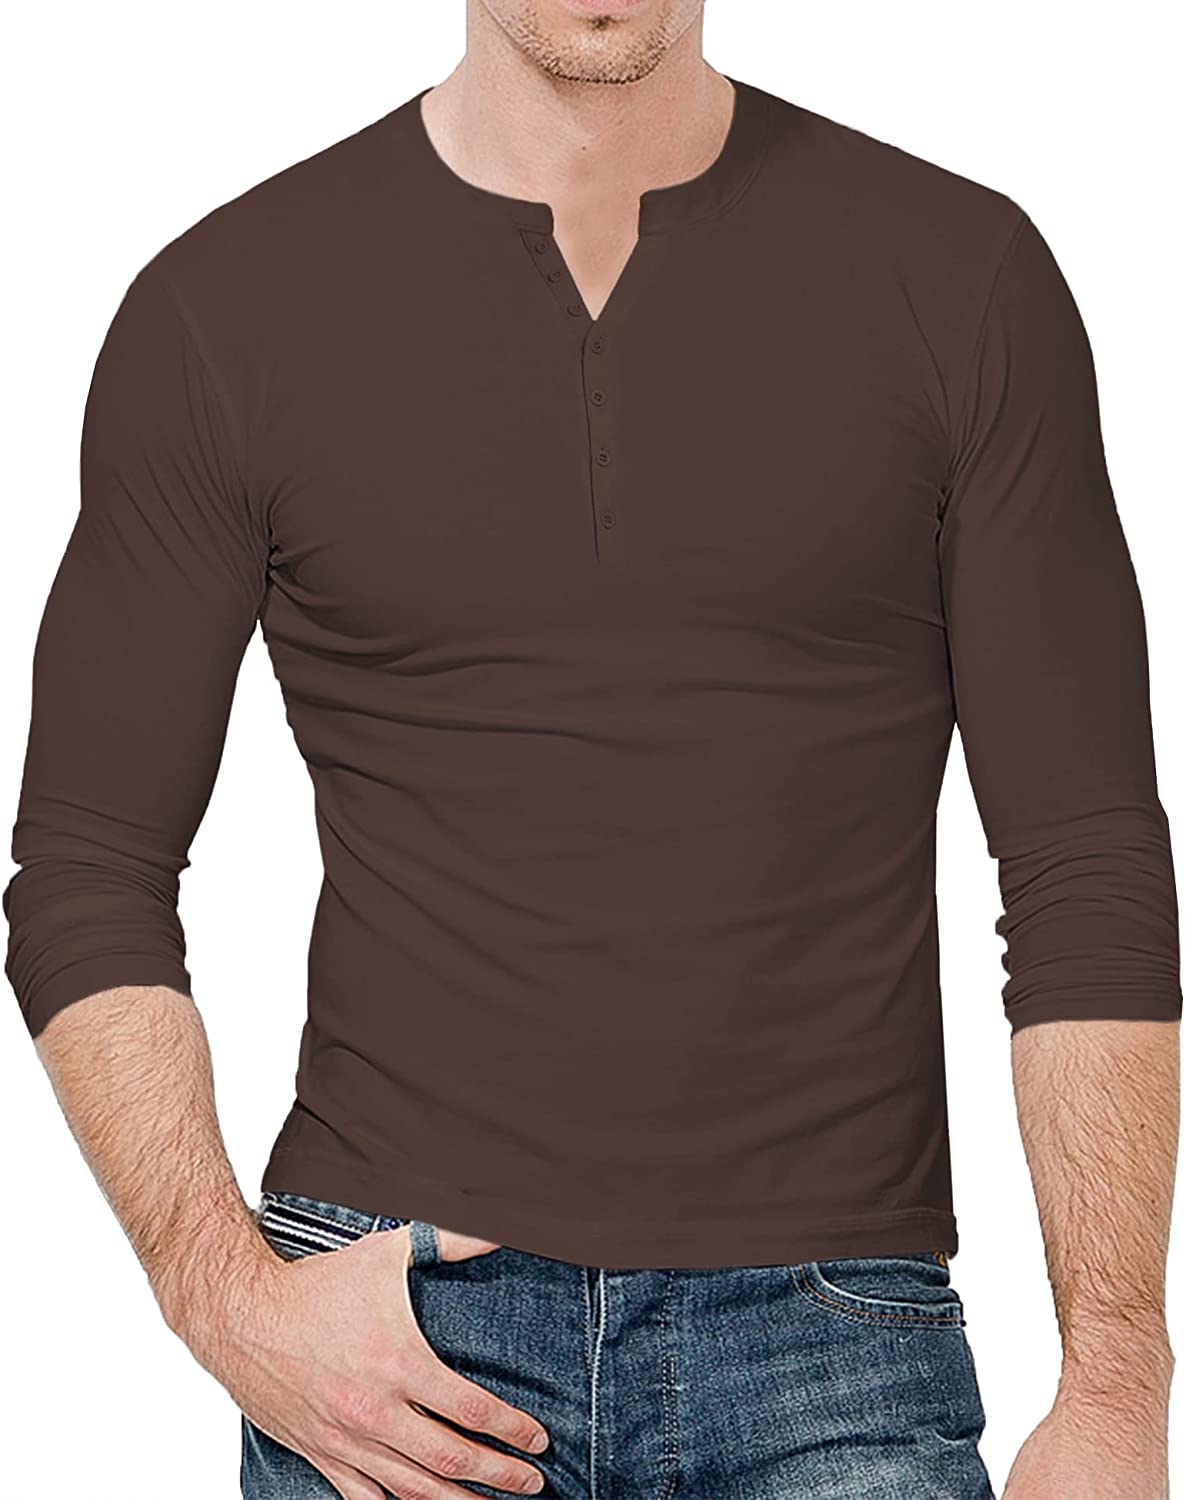 LecGee Men's Henley Shirt Long Sleeve with Superior 3 Spasm price B Casual Top